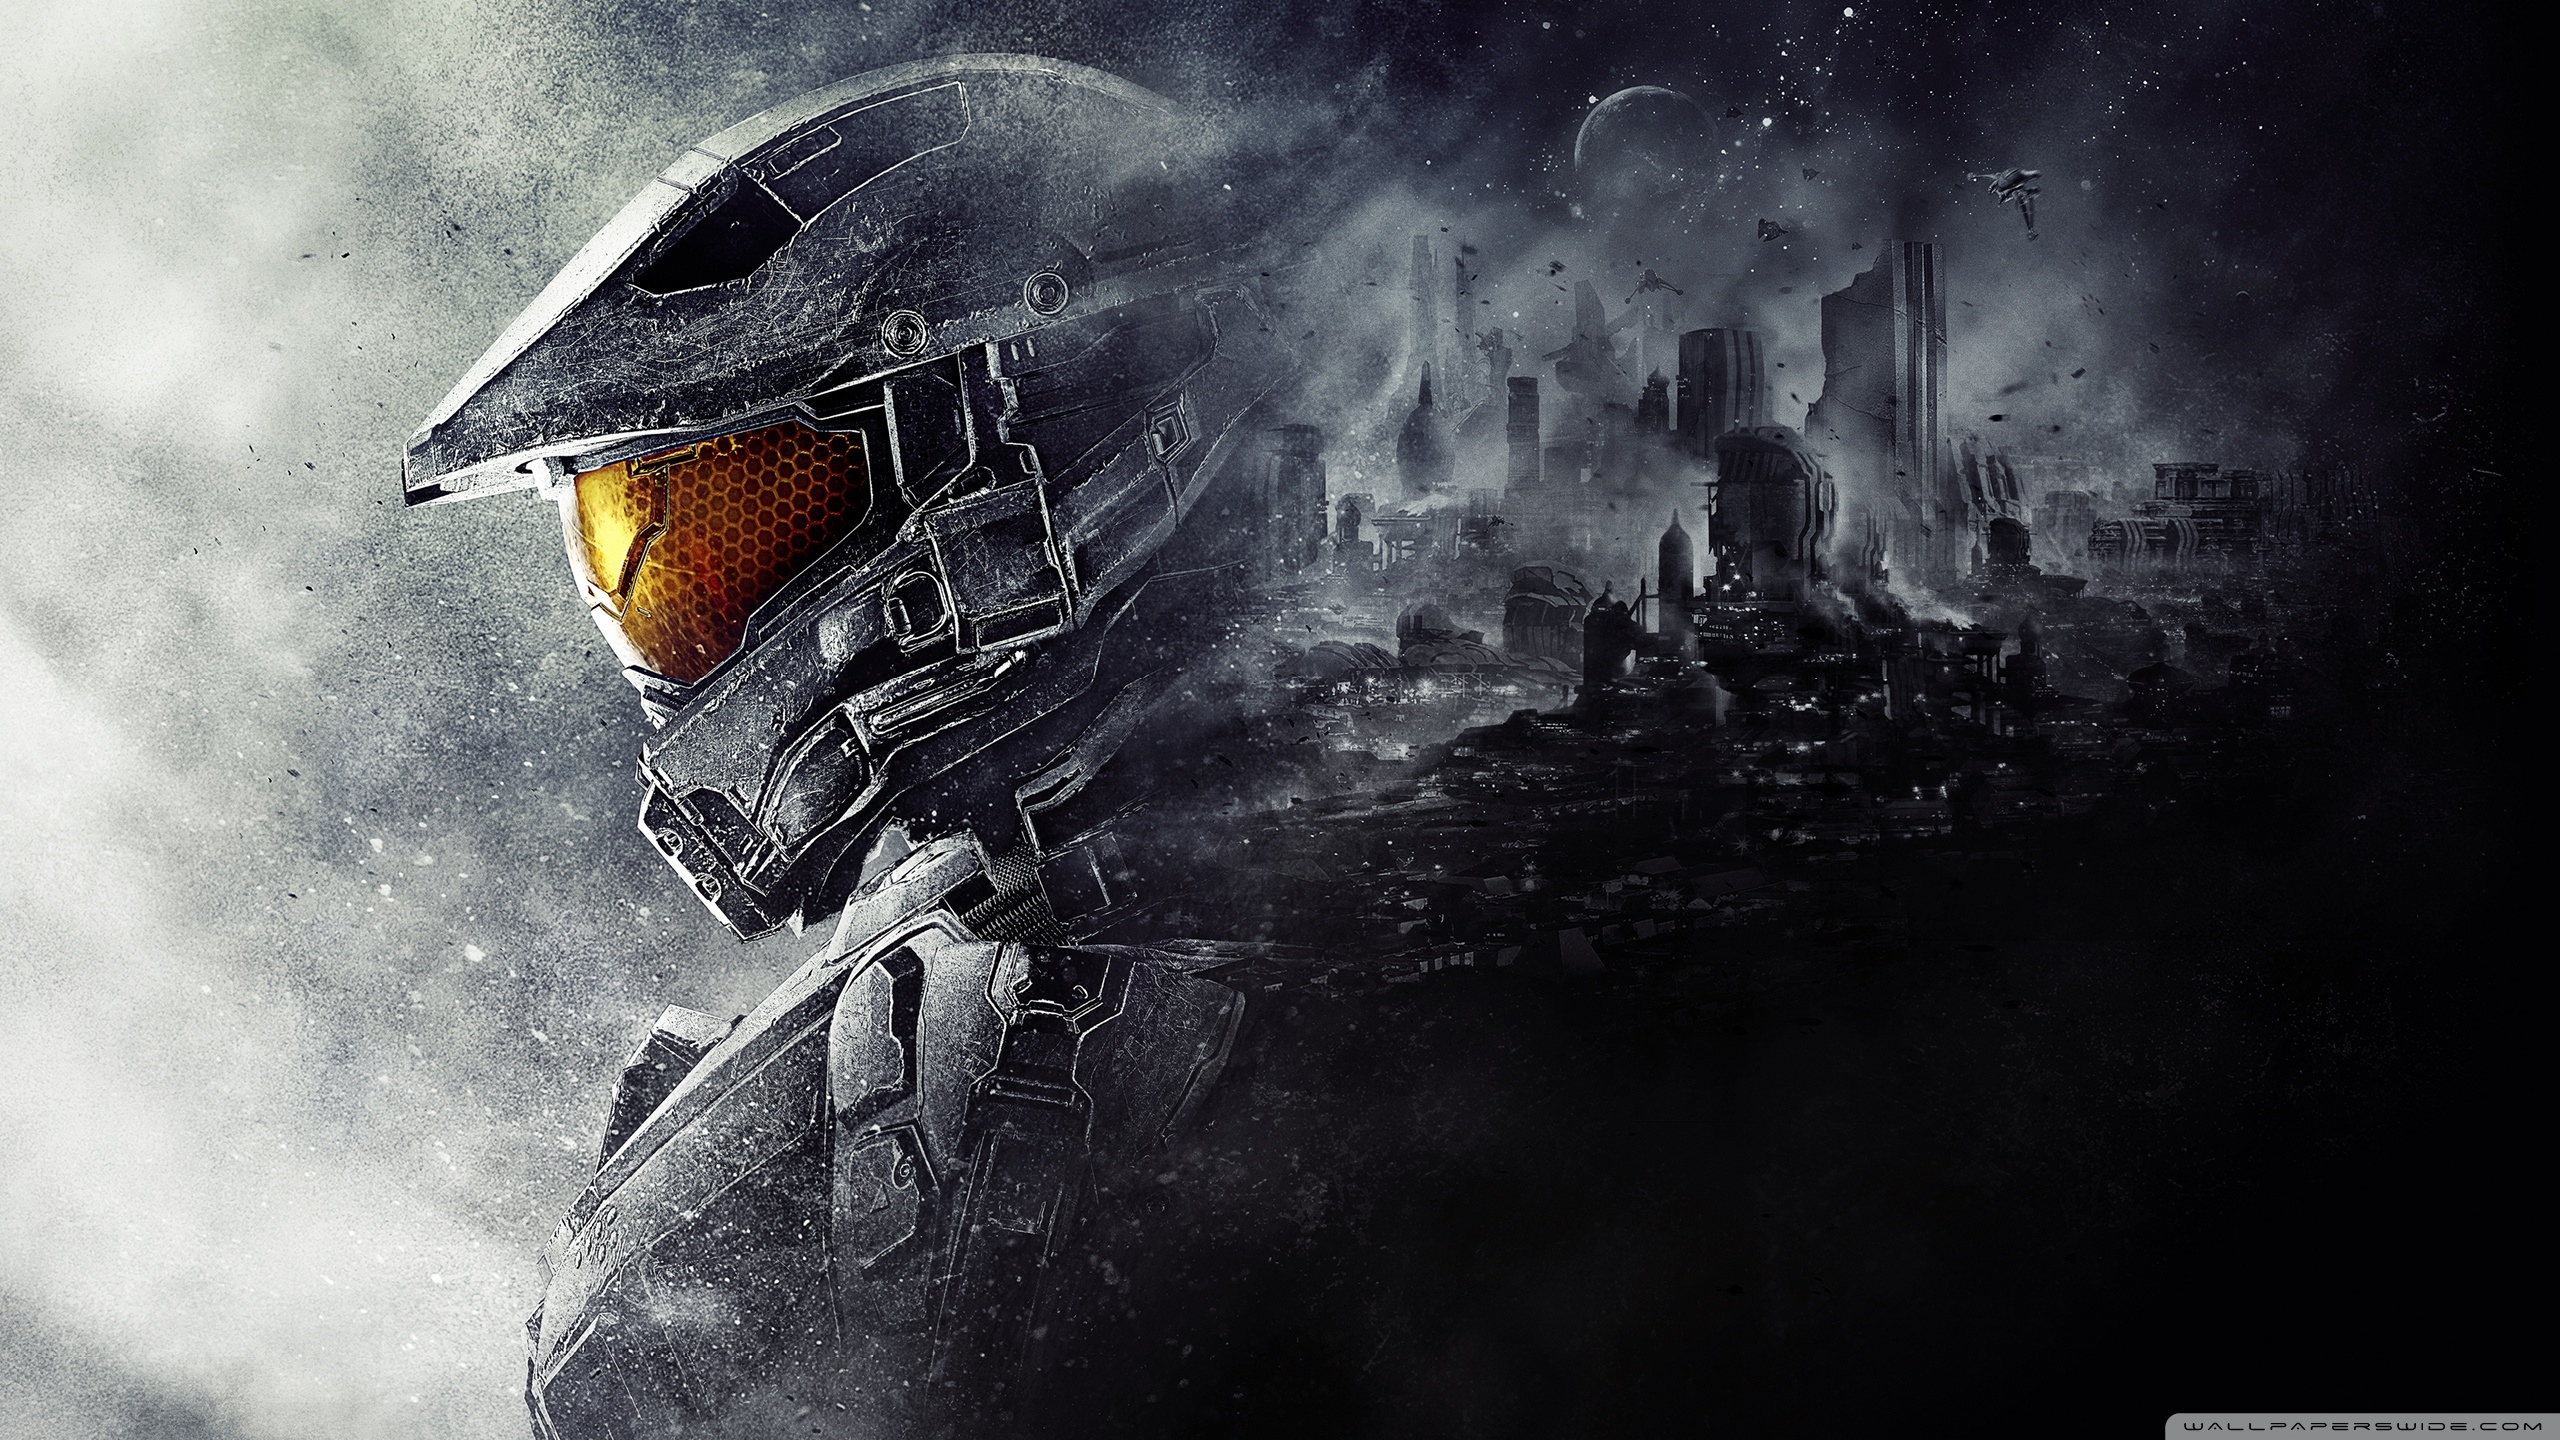 wallpaperswide ❤ halo hd desktop wallpapers for 4k ultra hd tv